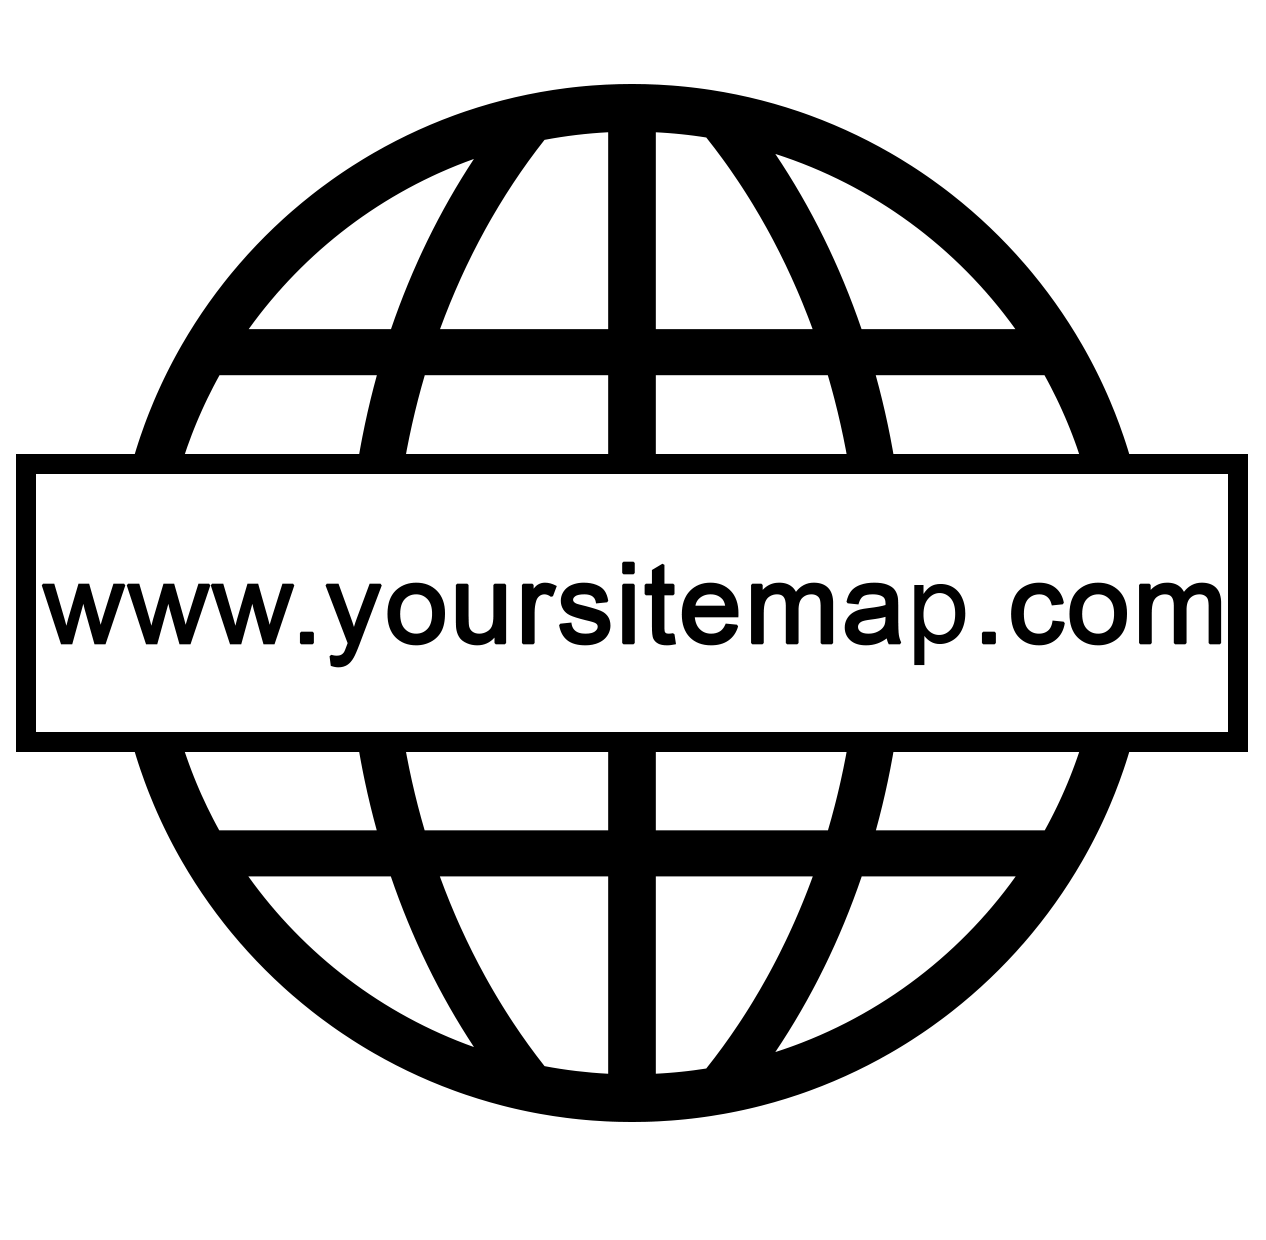 A Chance To Get Your Sitemap